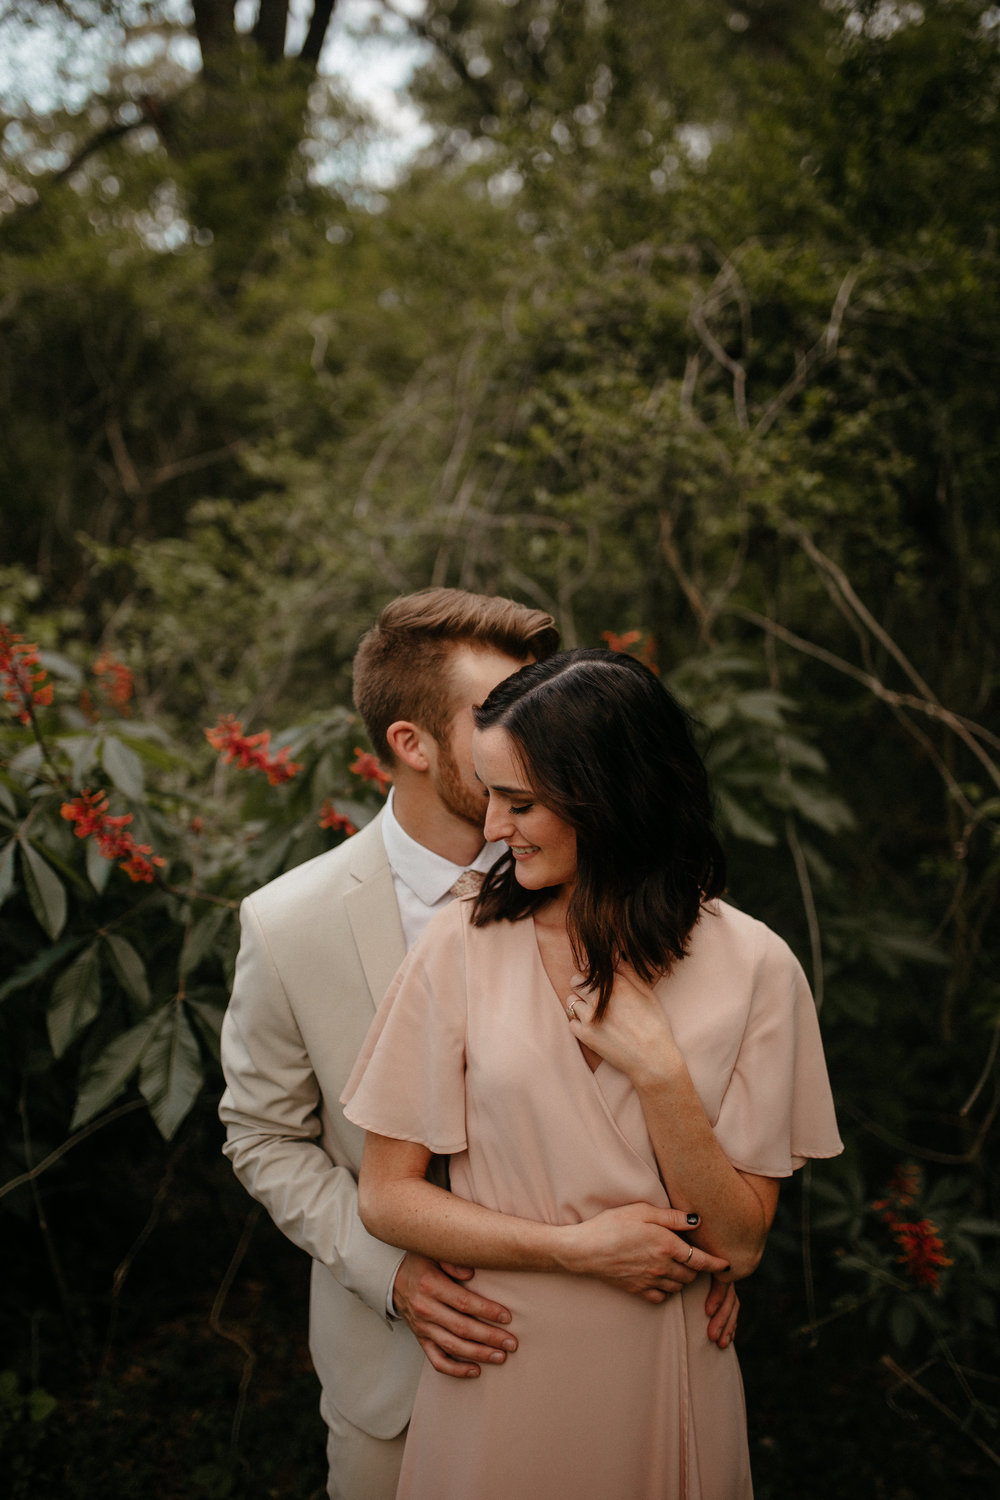 memphis-tennessee-wedding-photographer-the-hatches-utah-colorado-washington-arizona-oregon-yosemite-national-park-elopement-adventure-emotional-journalistic-spring-florals-colorful-intimate